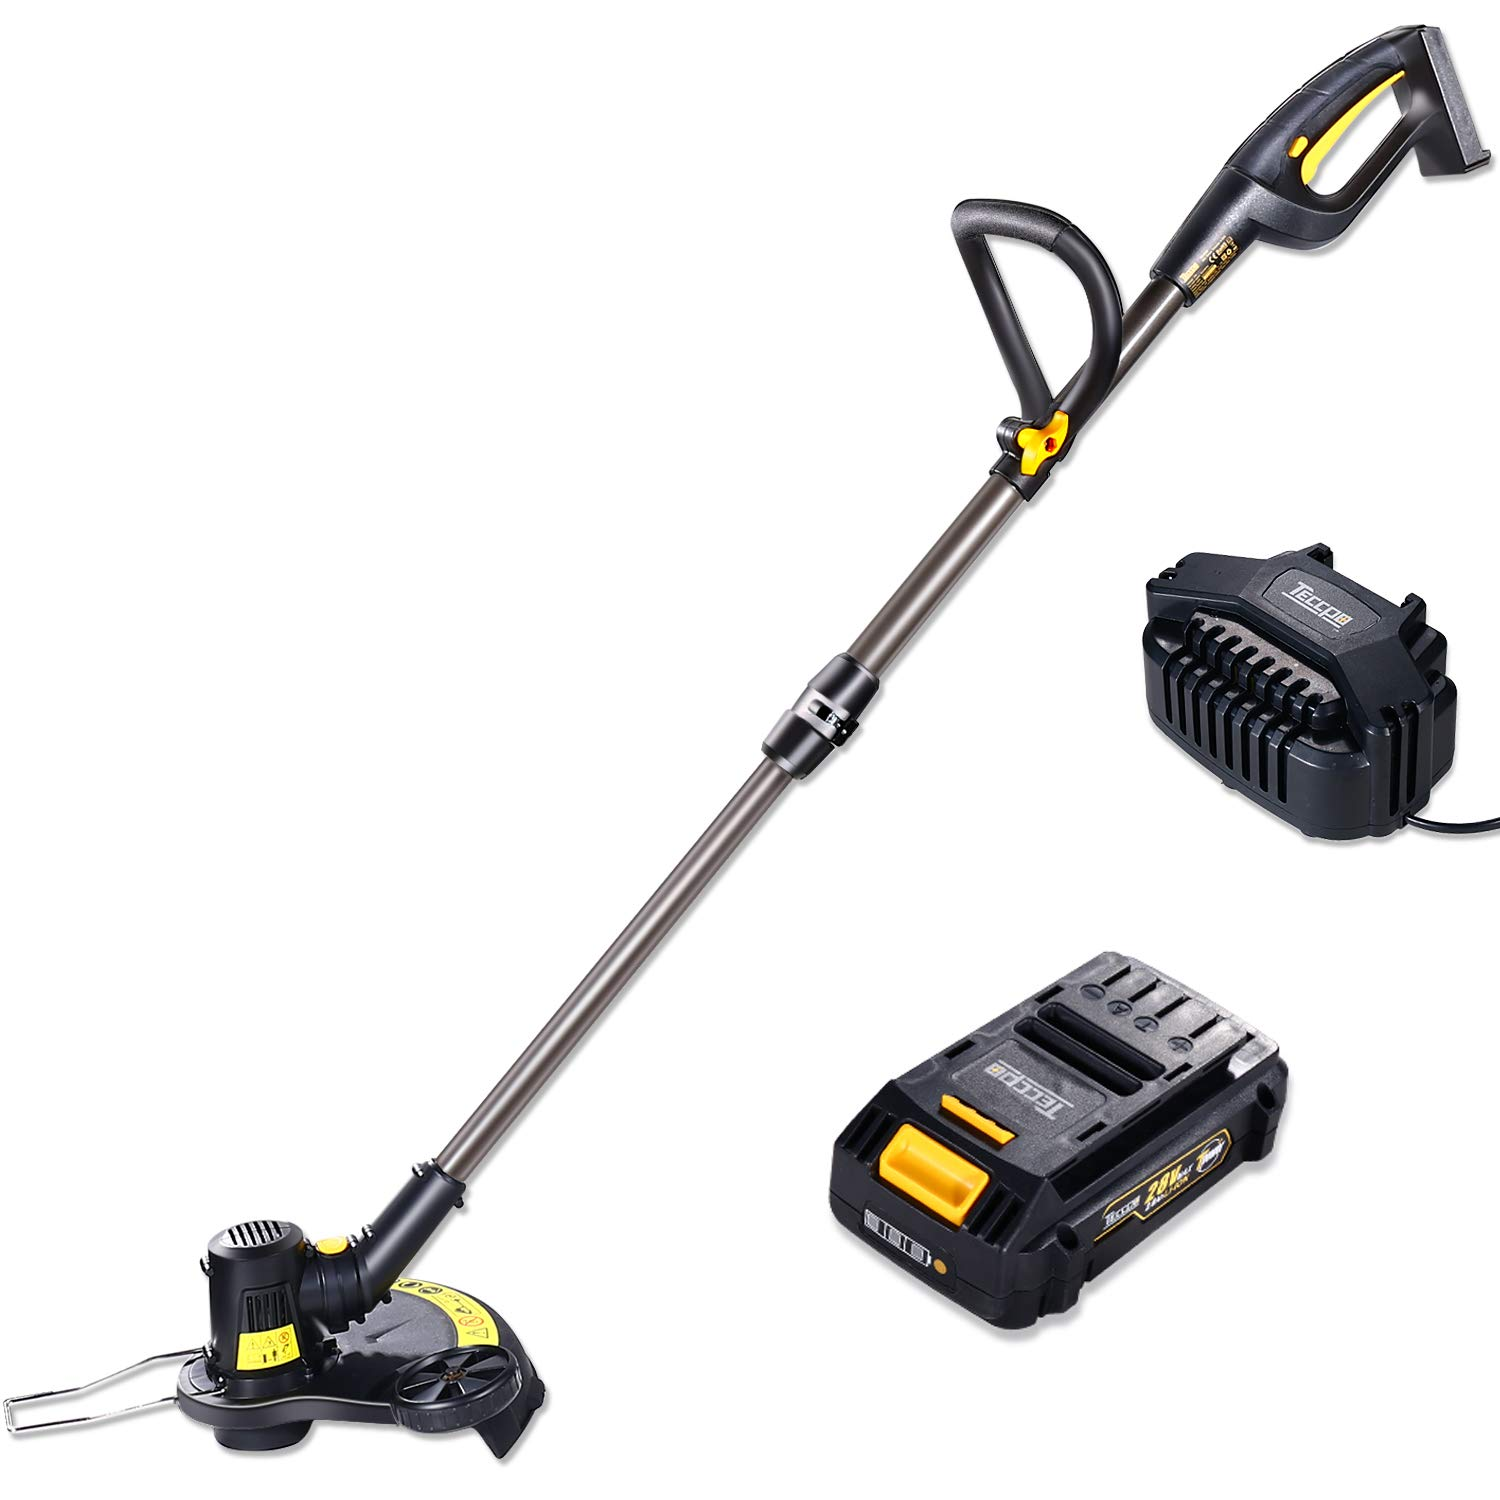 TECCPO Strimmer, 28V 2.0Ah Cordless Strimmer, 280/330mm Cutting Diameter, AFS Automatic Line Release, Telescopic Handle, Ideal for Garden Trimming and Edging - TDLT01G